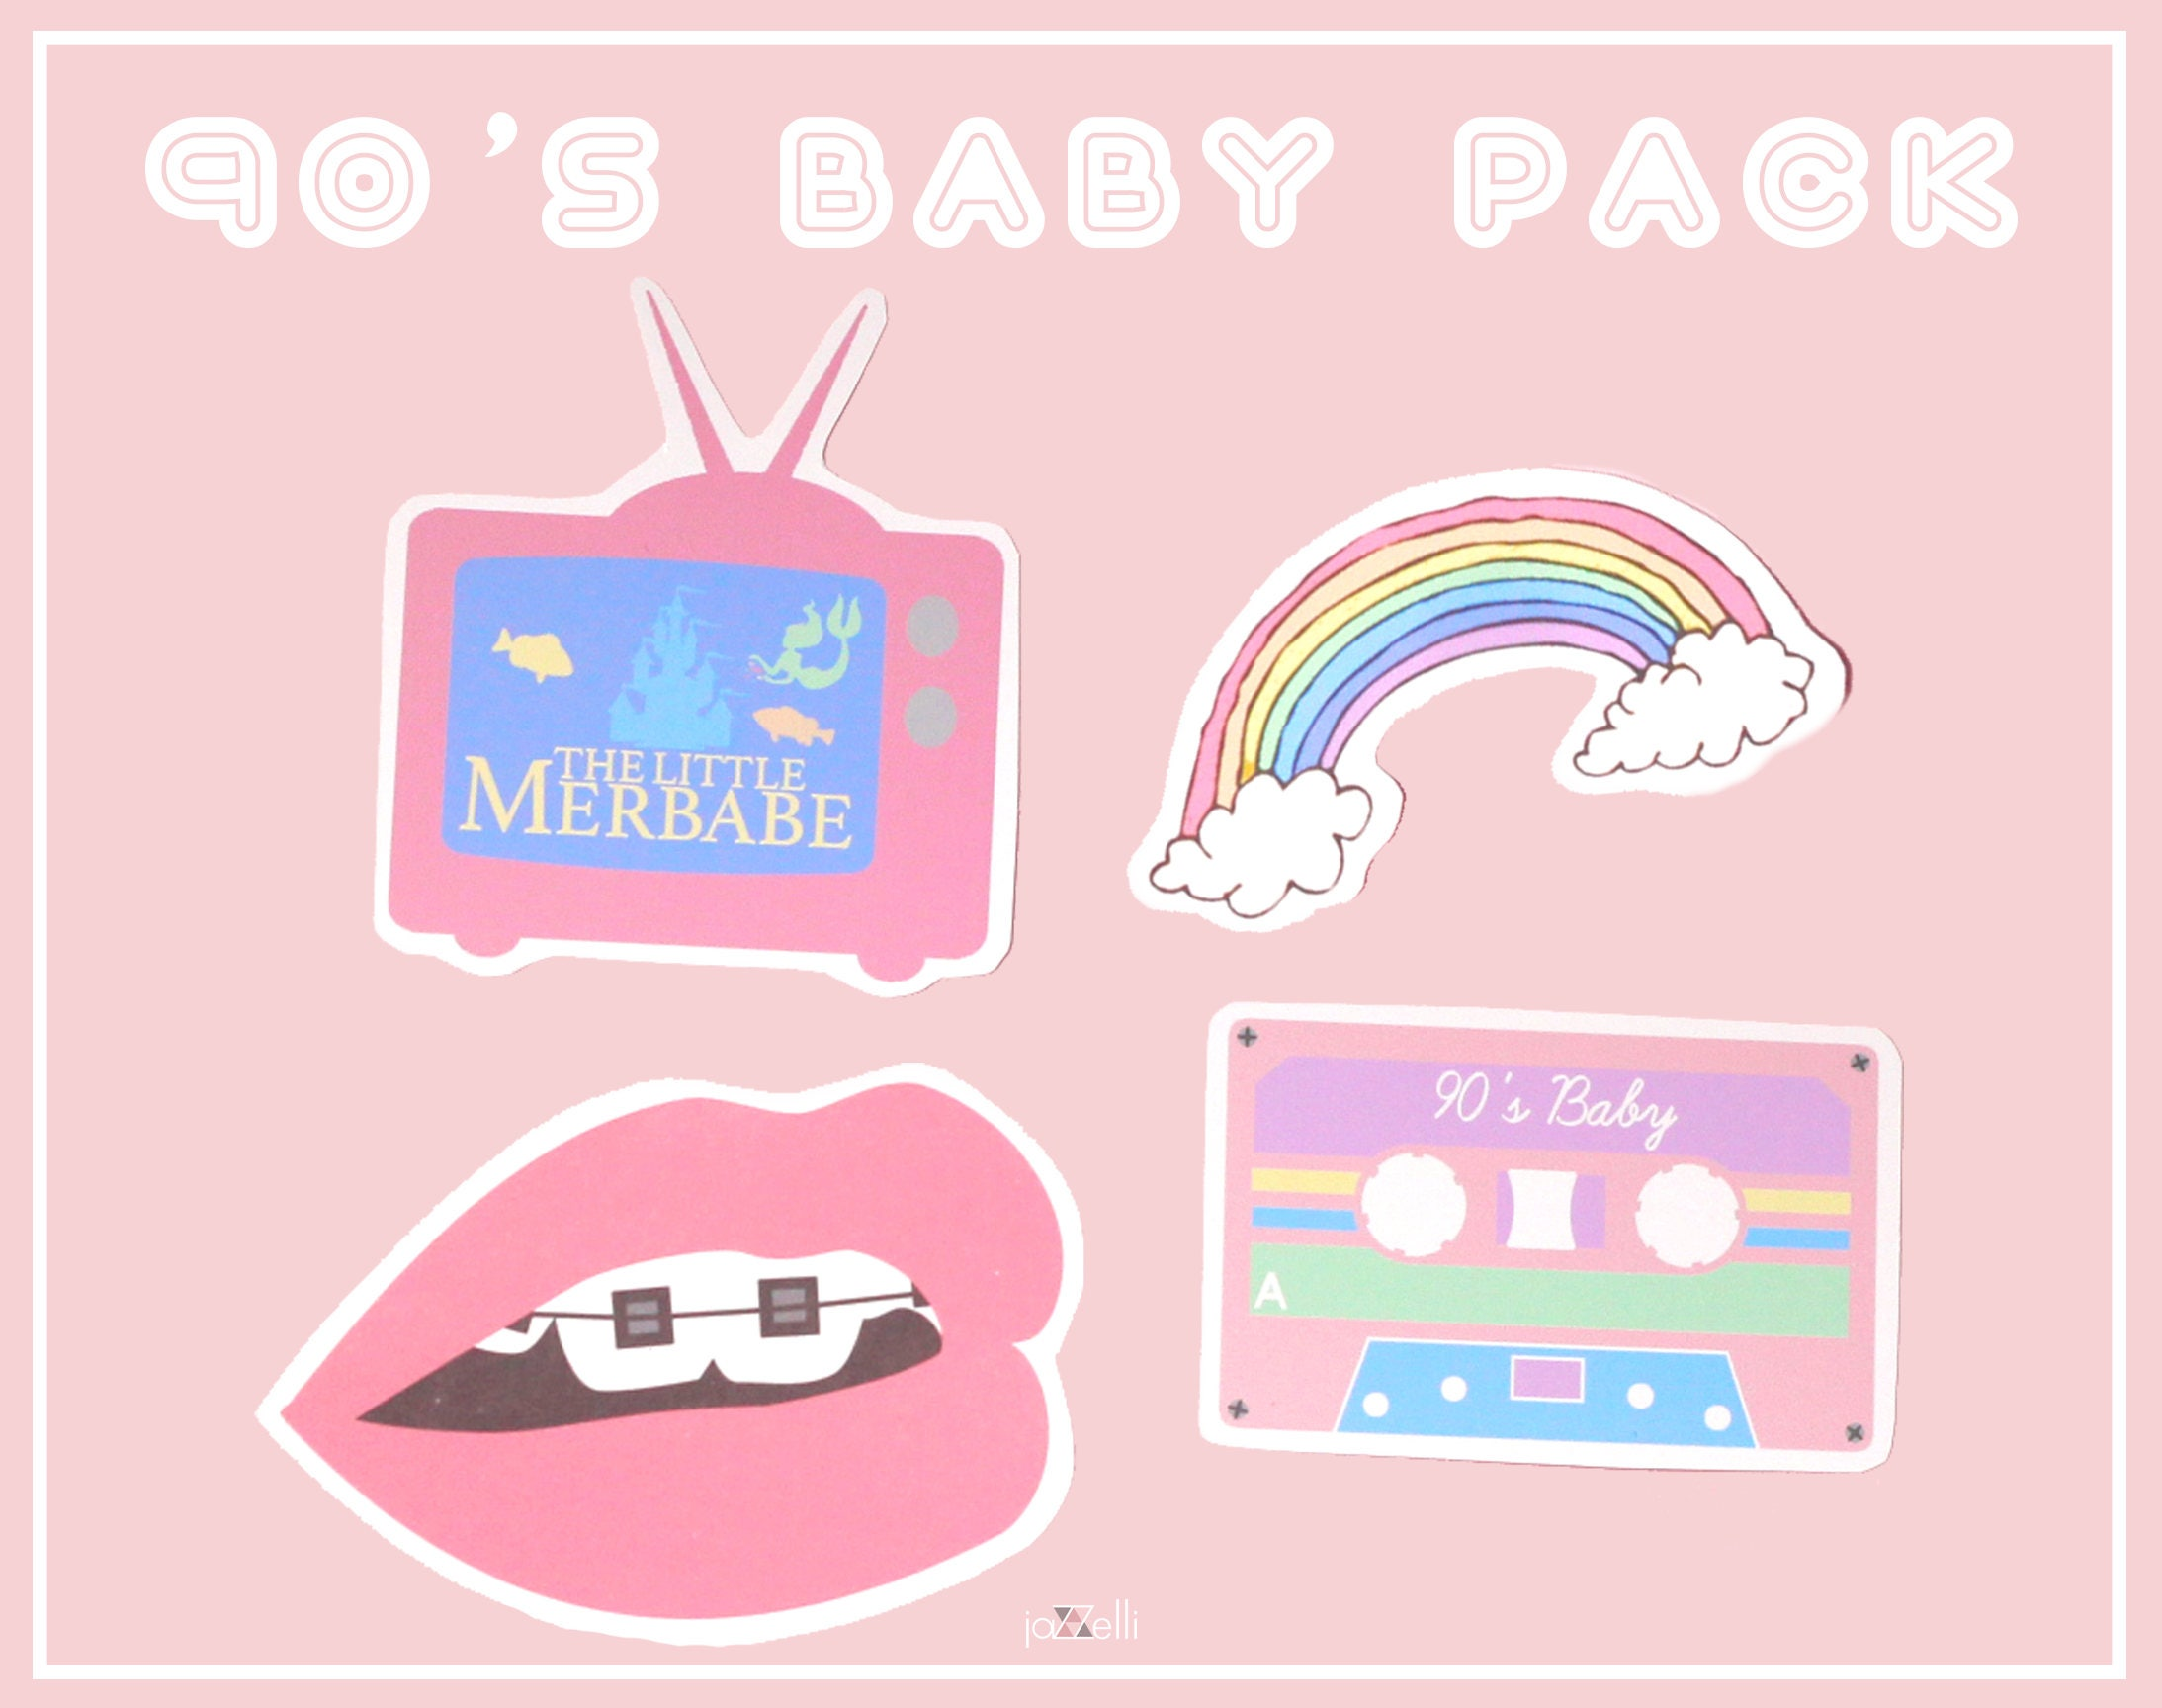 Rainbow Stickers For Walls 90 S Baby Sticker Pack Cute Stickers Tumblr Stickers